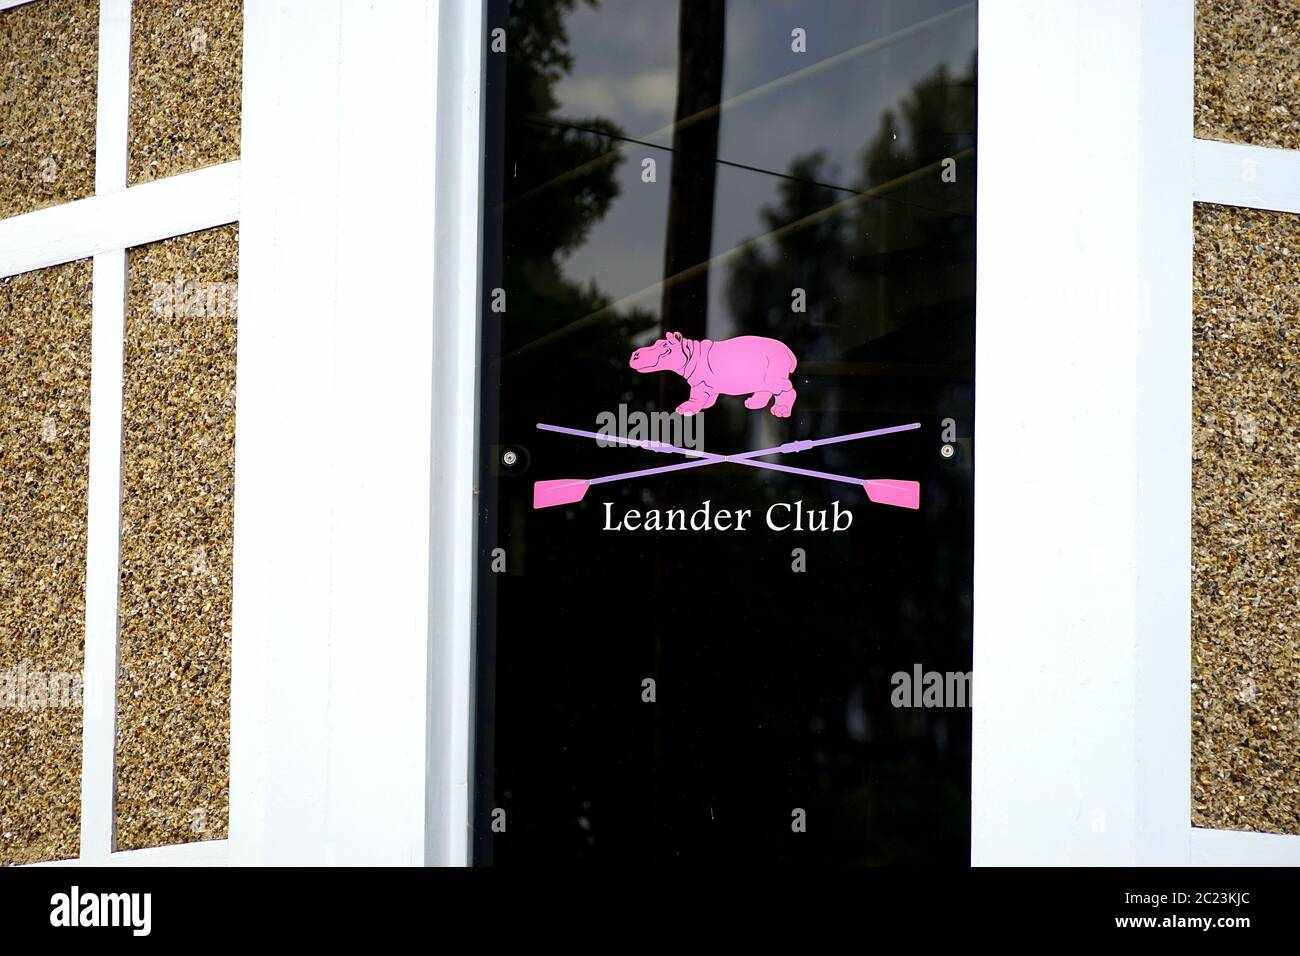 Leander Club crest on the club house Stock Photo